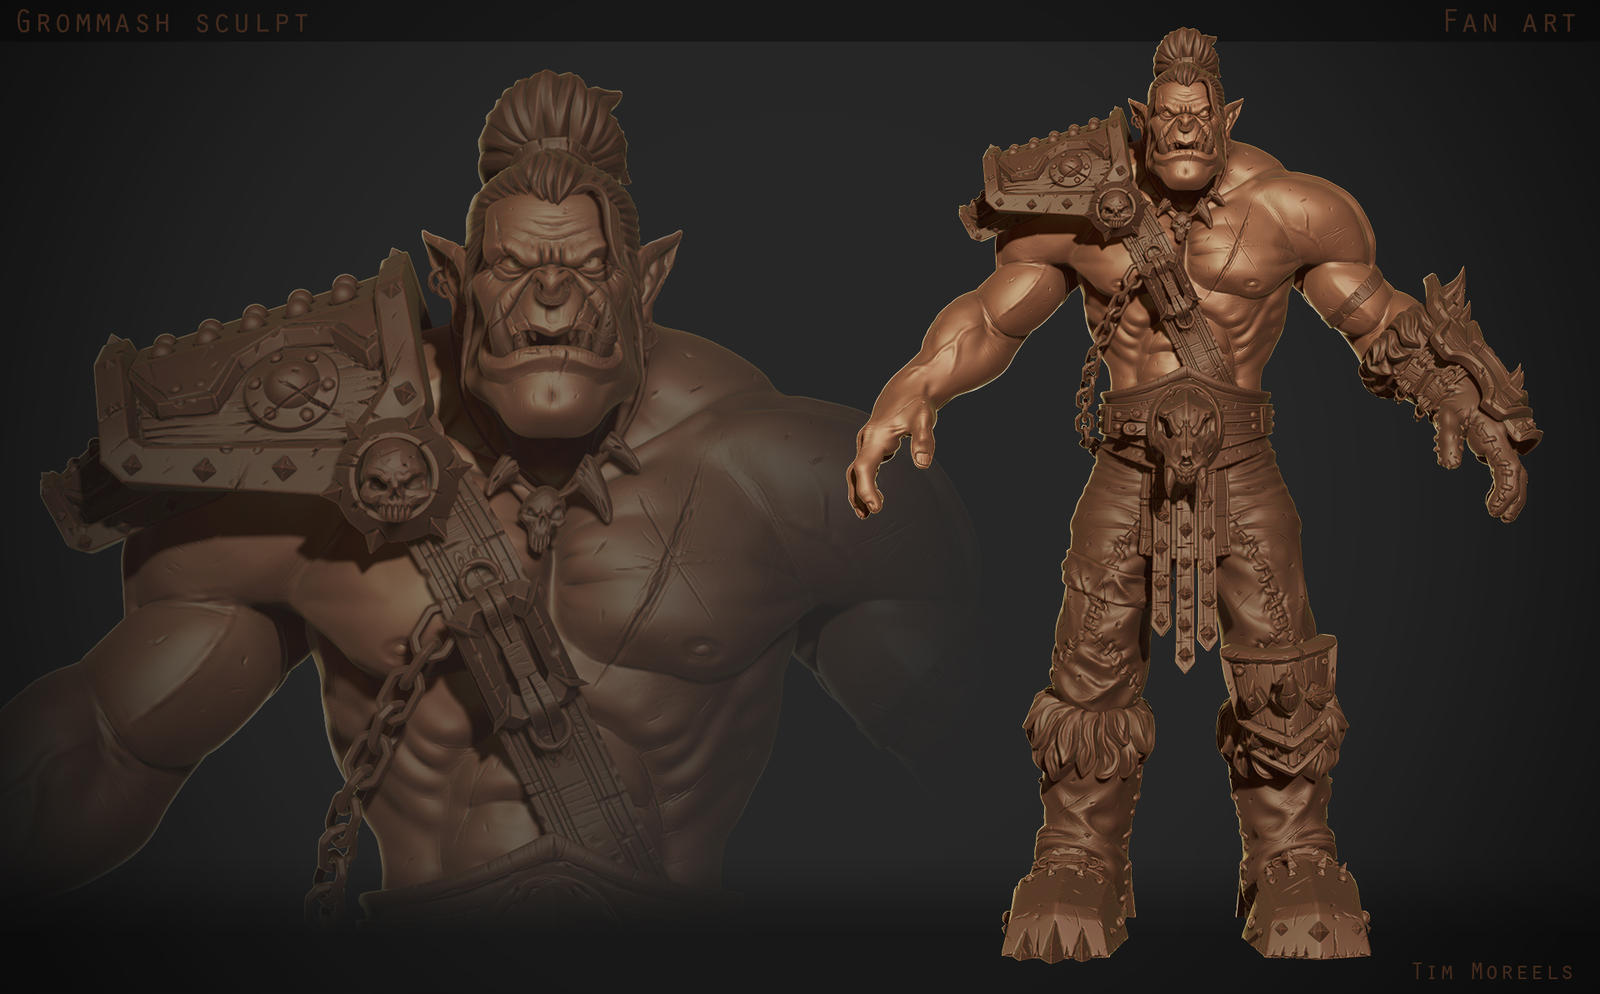 grommash_sculpt_final_by_madgunslinger-d8ruzoi.jpg